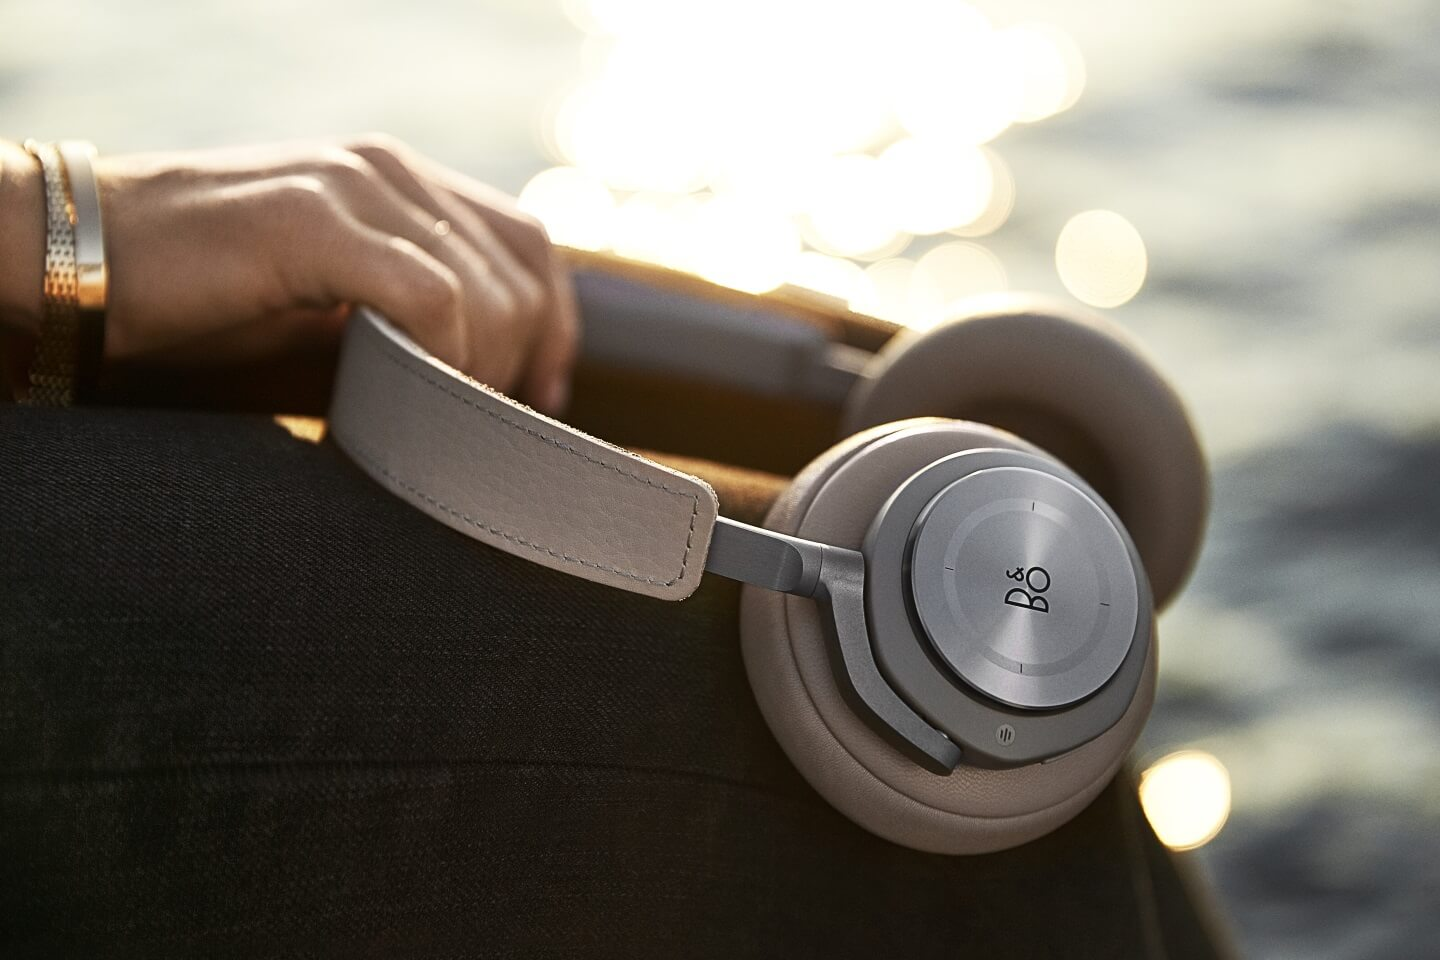 BeoPlay H9 over-ear headphones with active noise canceling.